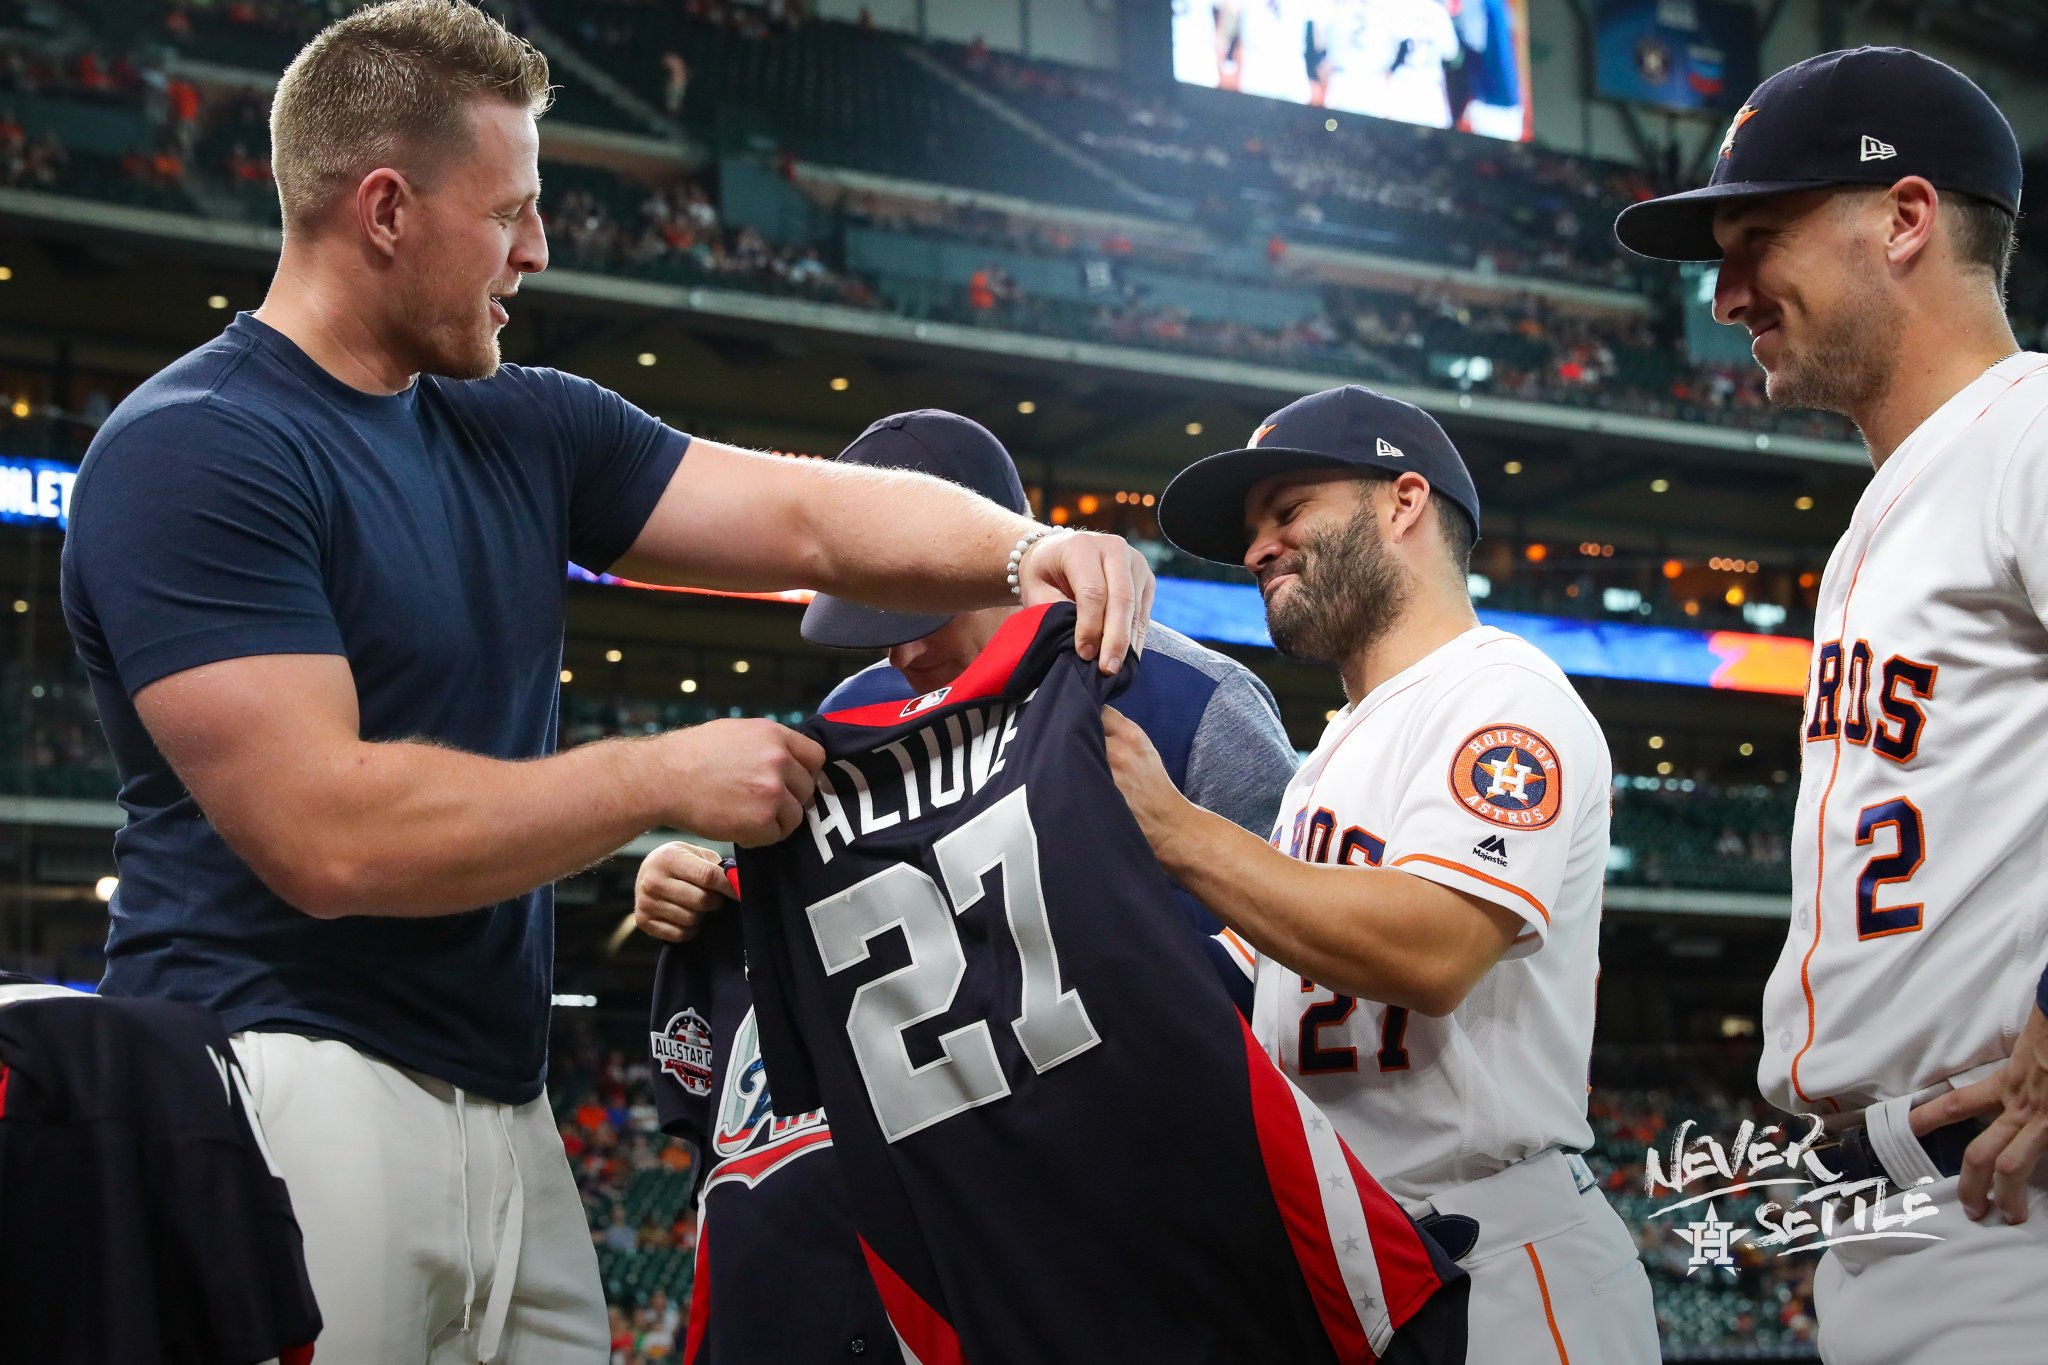 Shoutout to @JJWatt for presenting our guys with their #AllStrosGame jerseys! �� https://t.co/E3DG4bb3Om